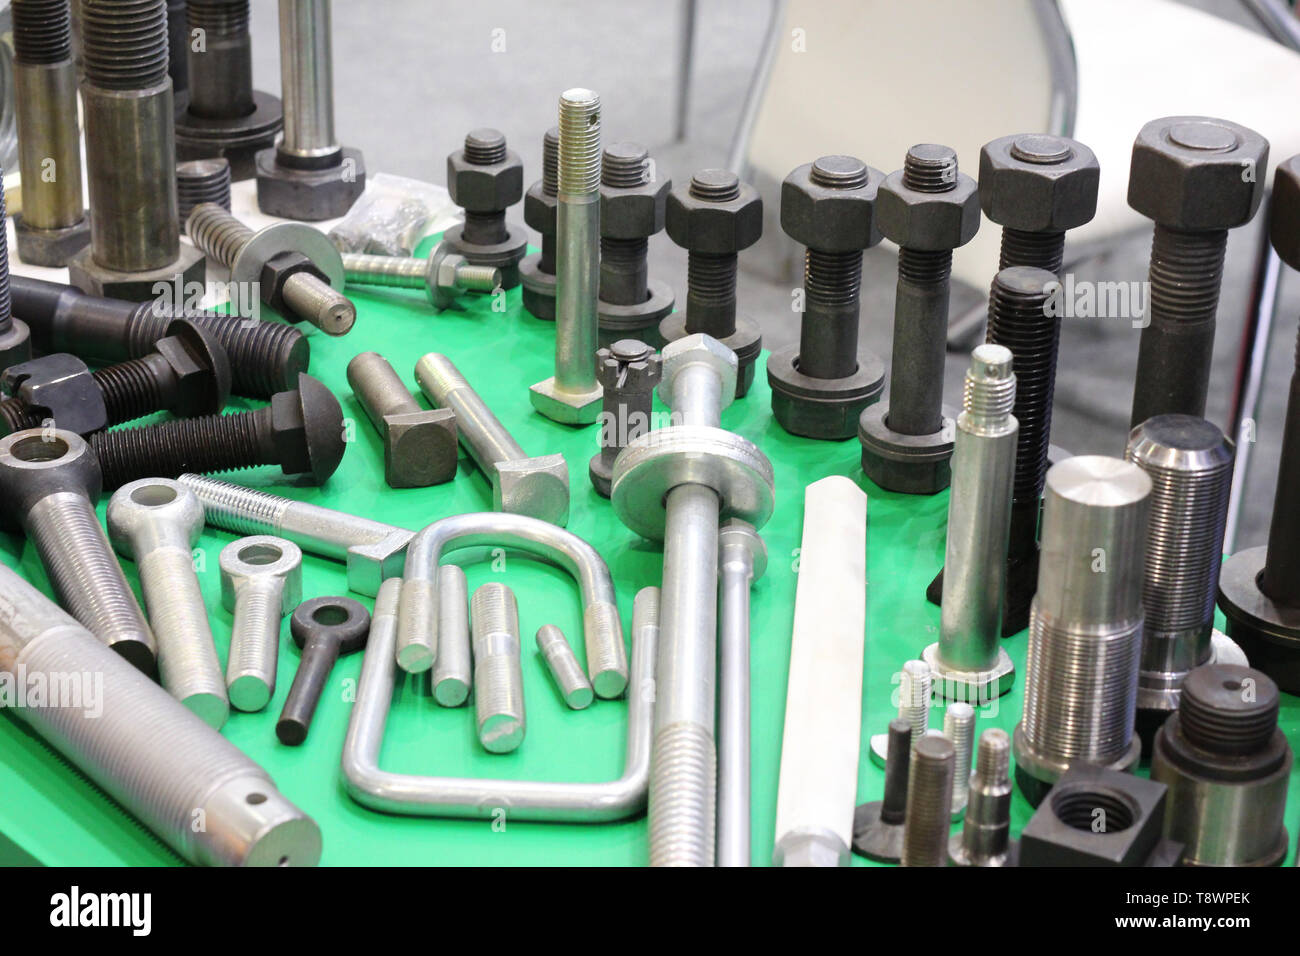 Metal products made at a metallurgical plant. Production of hardware. Stainless fasteners. Many screws, bolts and screws. - Stock Image